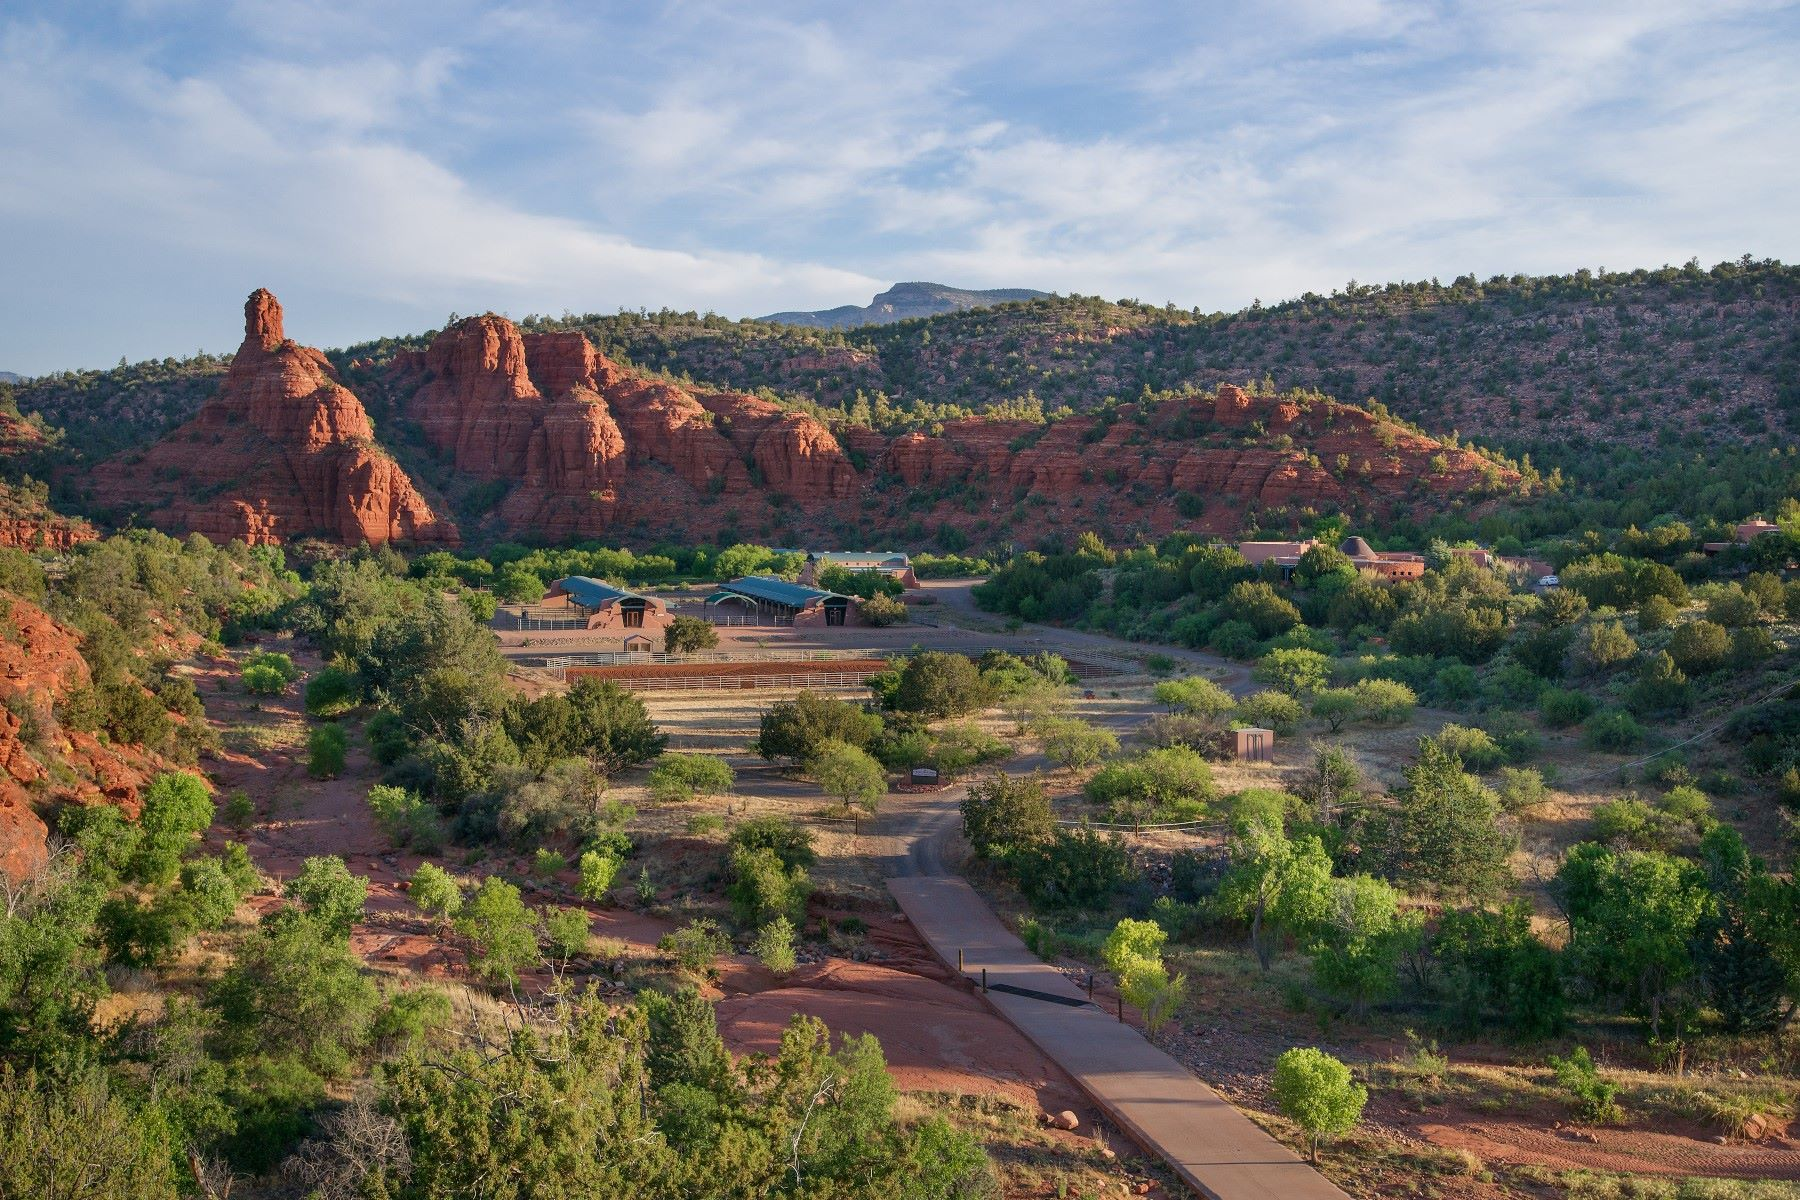 Terreno por un Venta en One-of-a-kind property - largest undeveloped privately owned parcels in Sedona 6625 W State Route 89A -- 0 Sedona, Arizona 86336 Estados Unidos